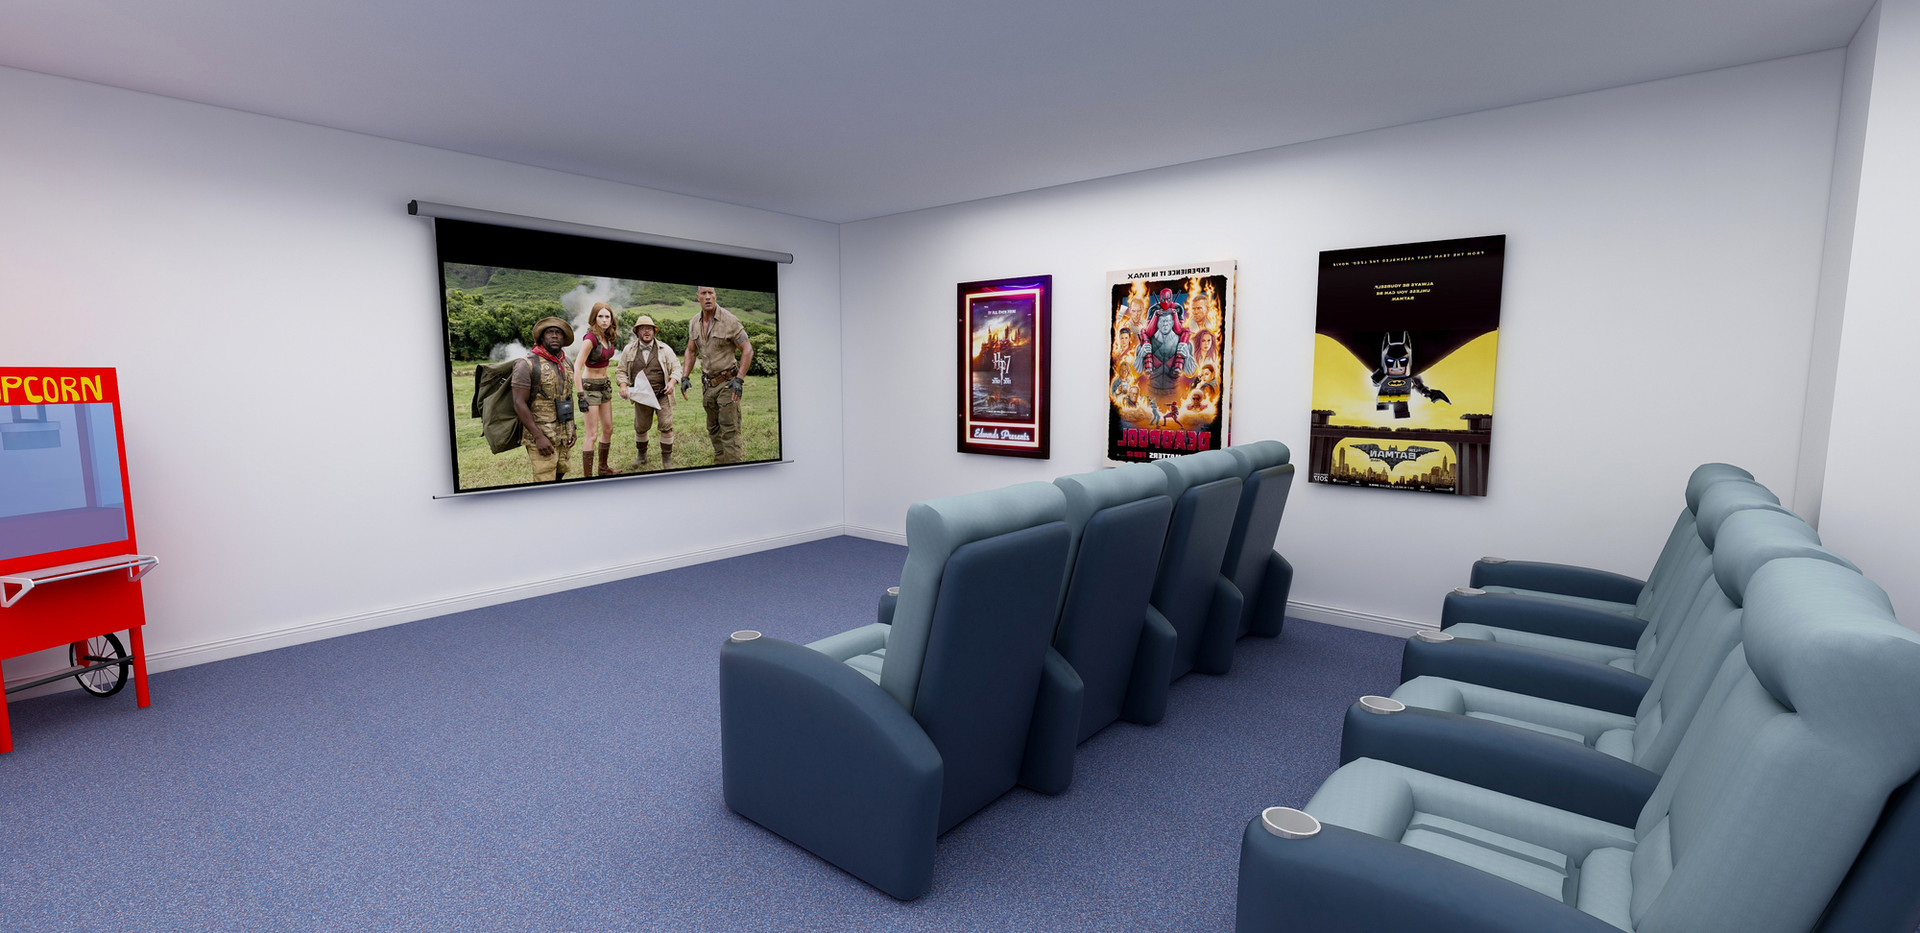 Basement home movie theater render